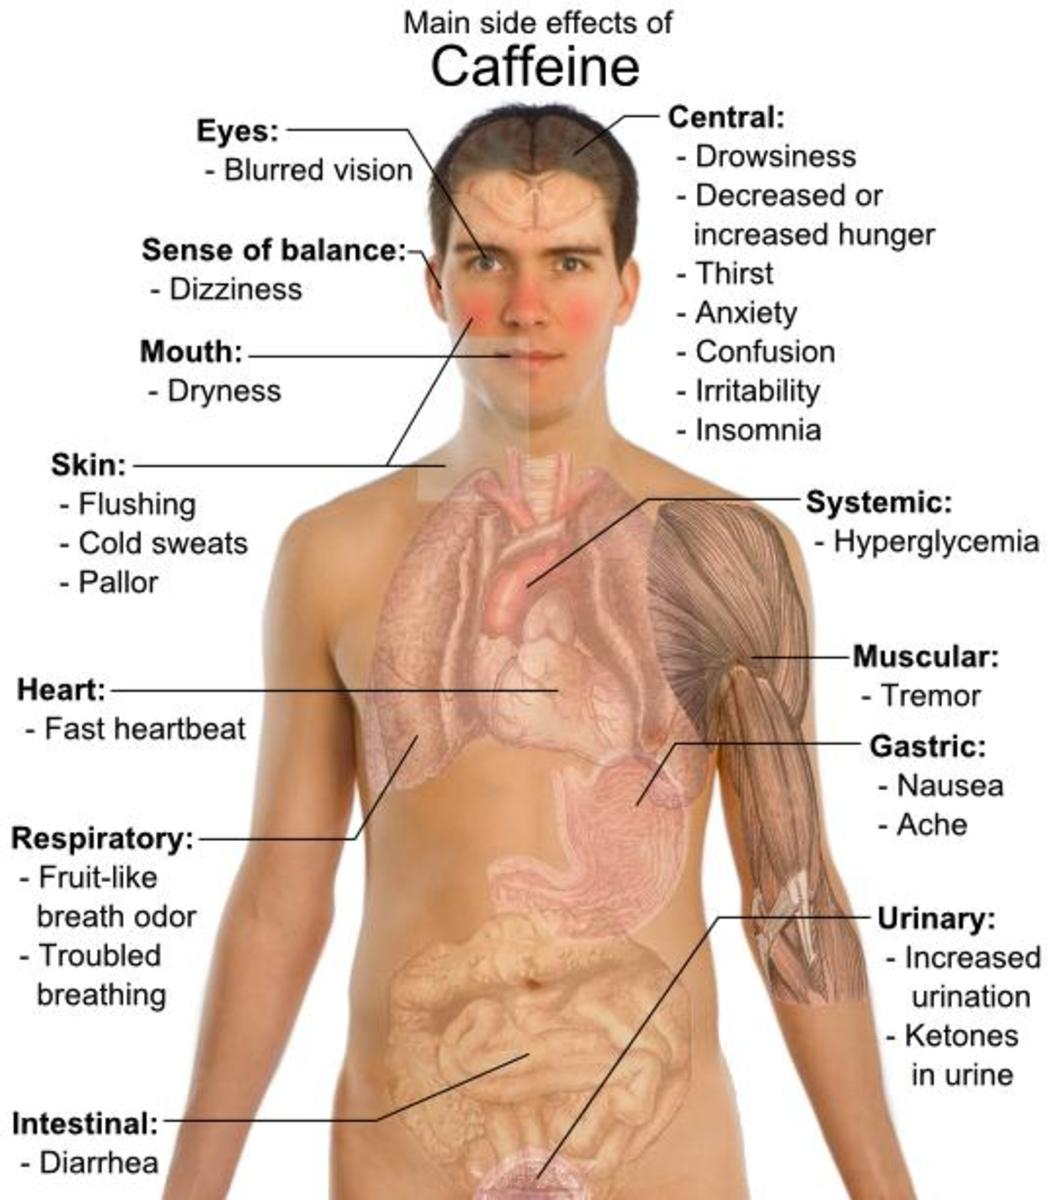 The Human Body and Its Caffeine Affects on a Diagram of a Young Brunette Male